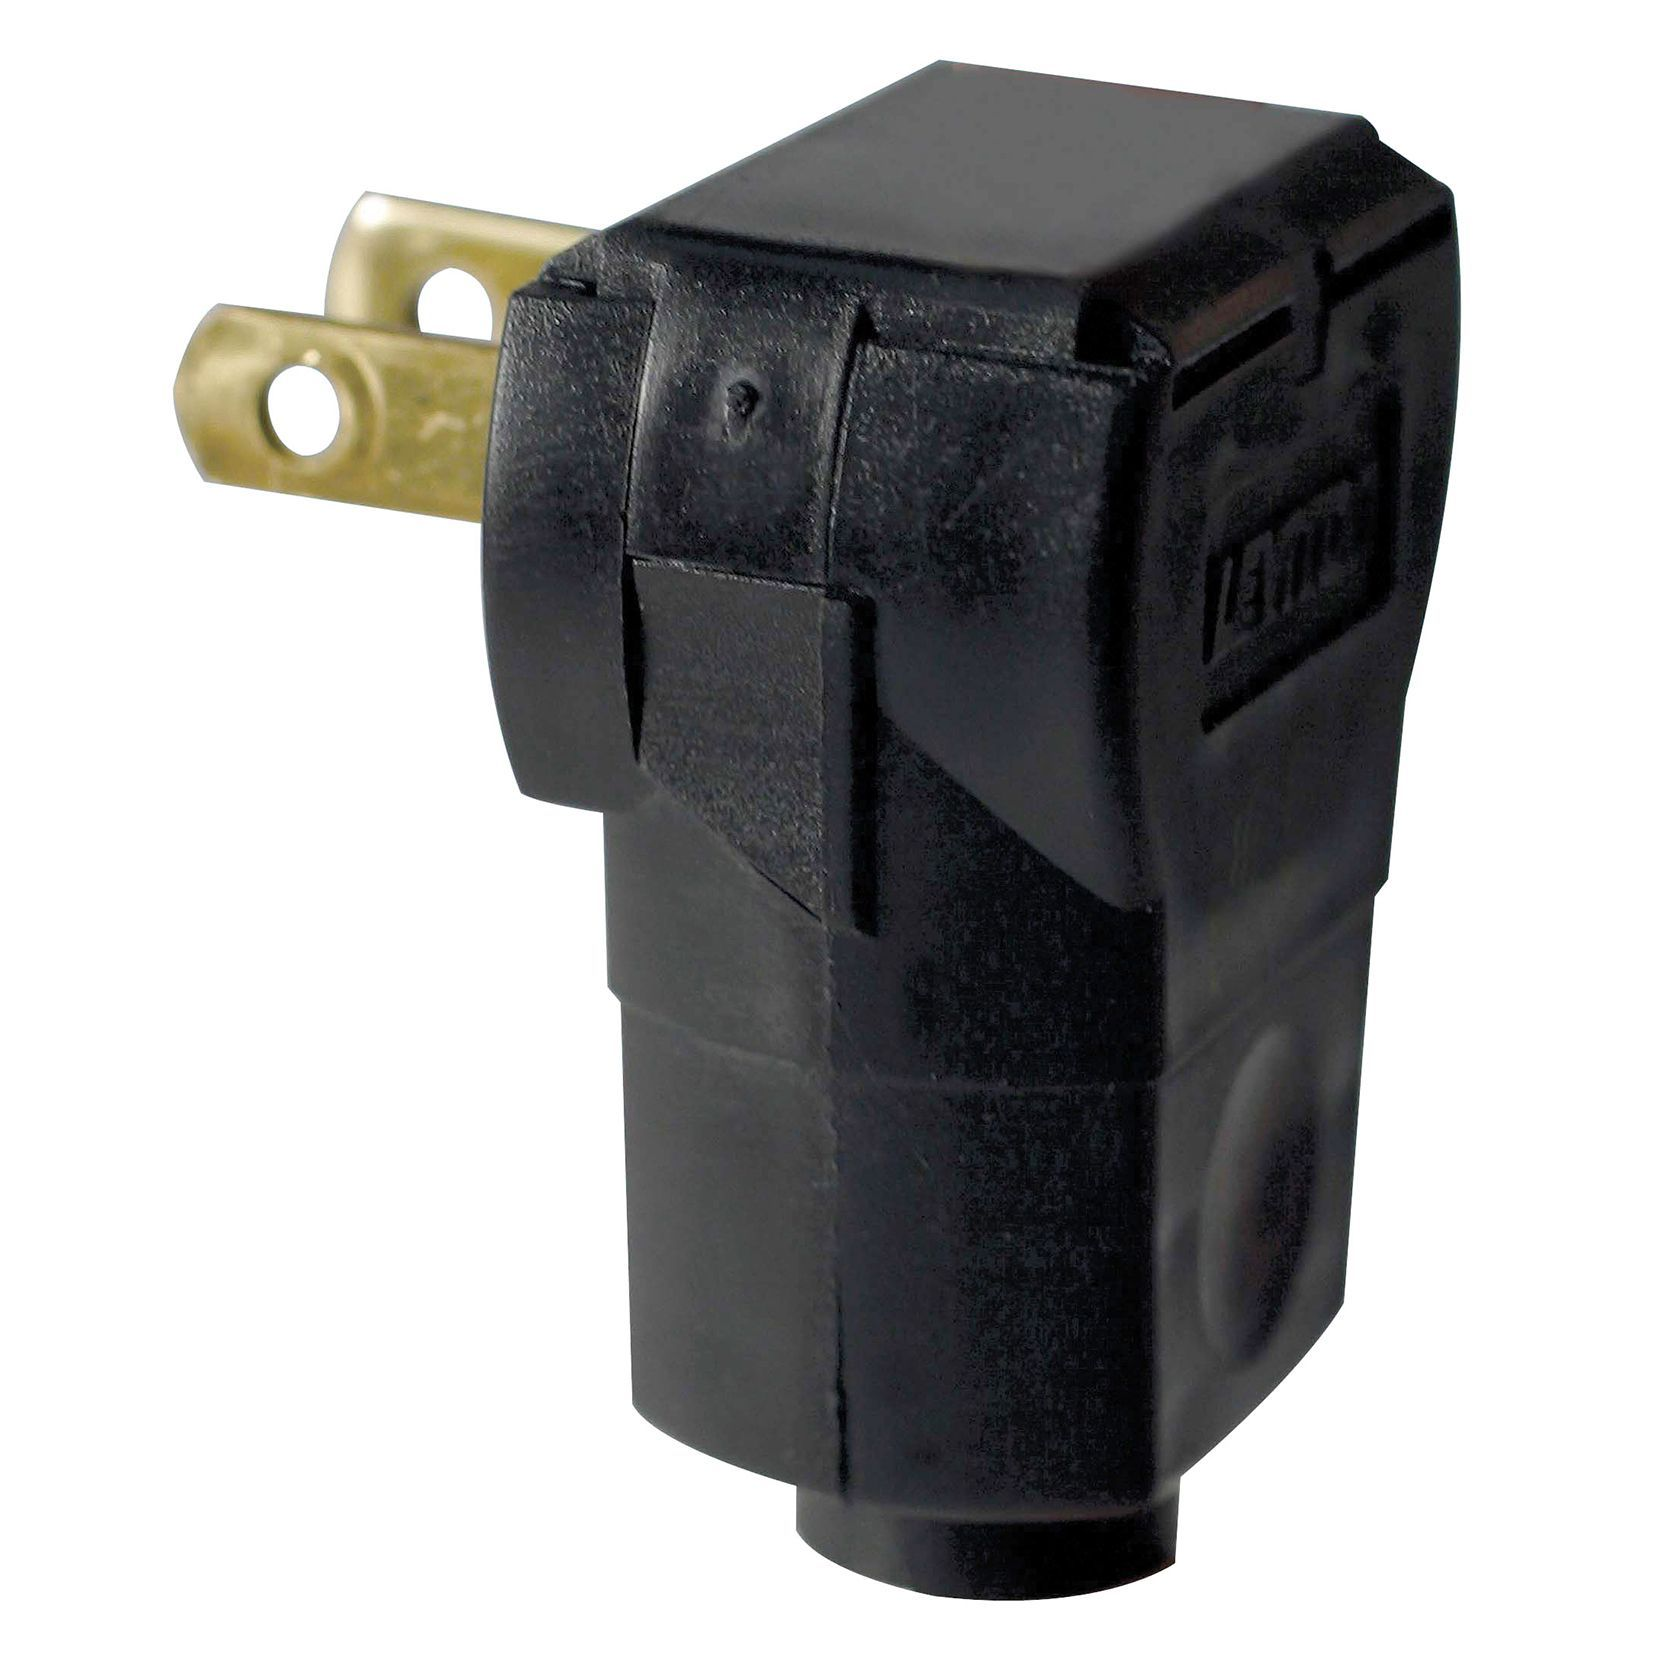 Leviton 002-101AN-O Brown Residential Grade Straight Blade Angle Plug (Other electrical), Black